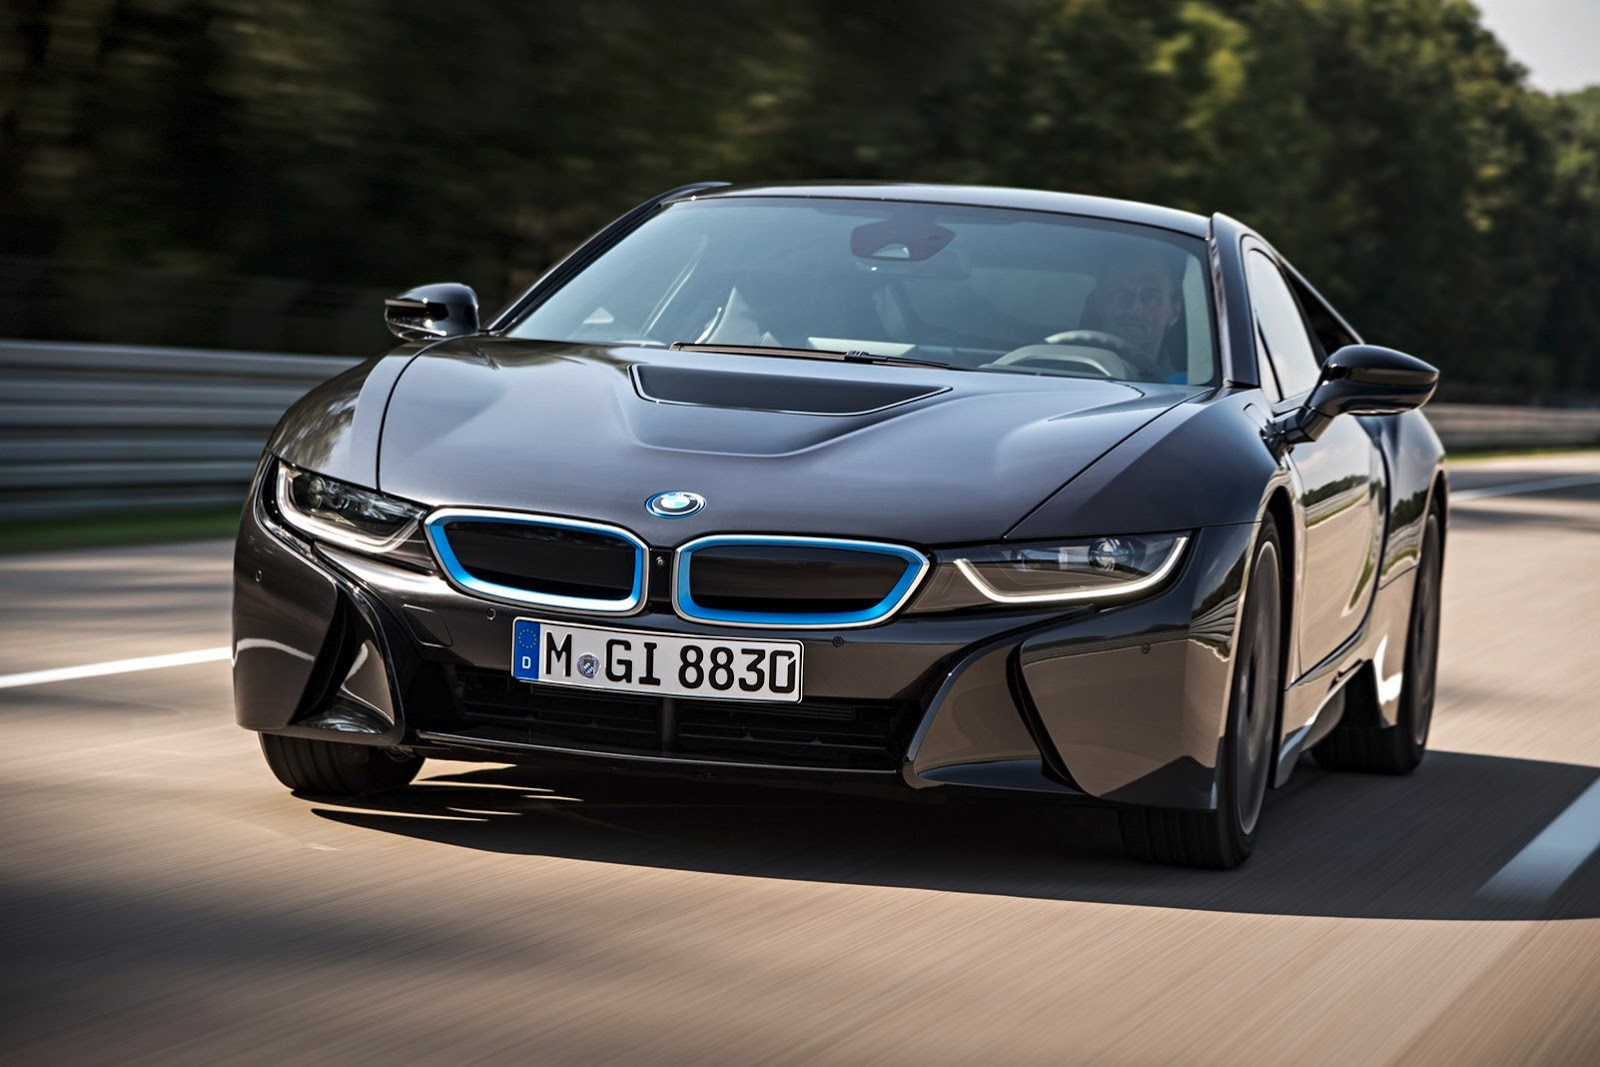 New Bmw I8 Supercar Photo Gallery Car Gallery Super HD Wallpapers Download free images and photos [musssic.tk]